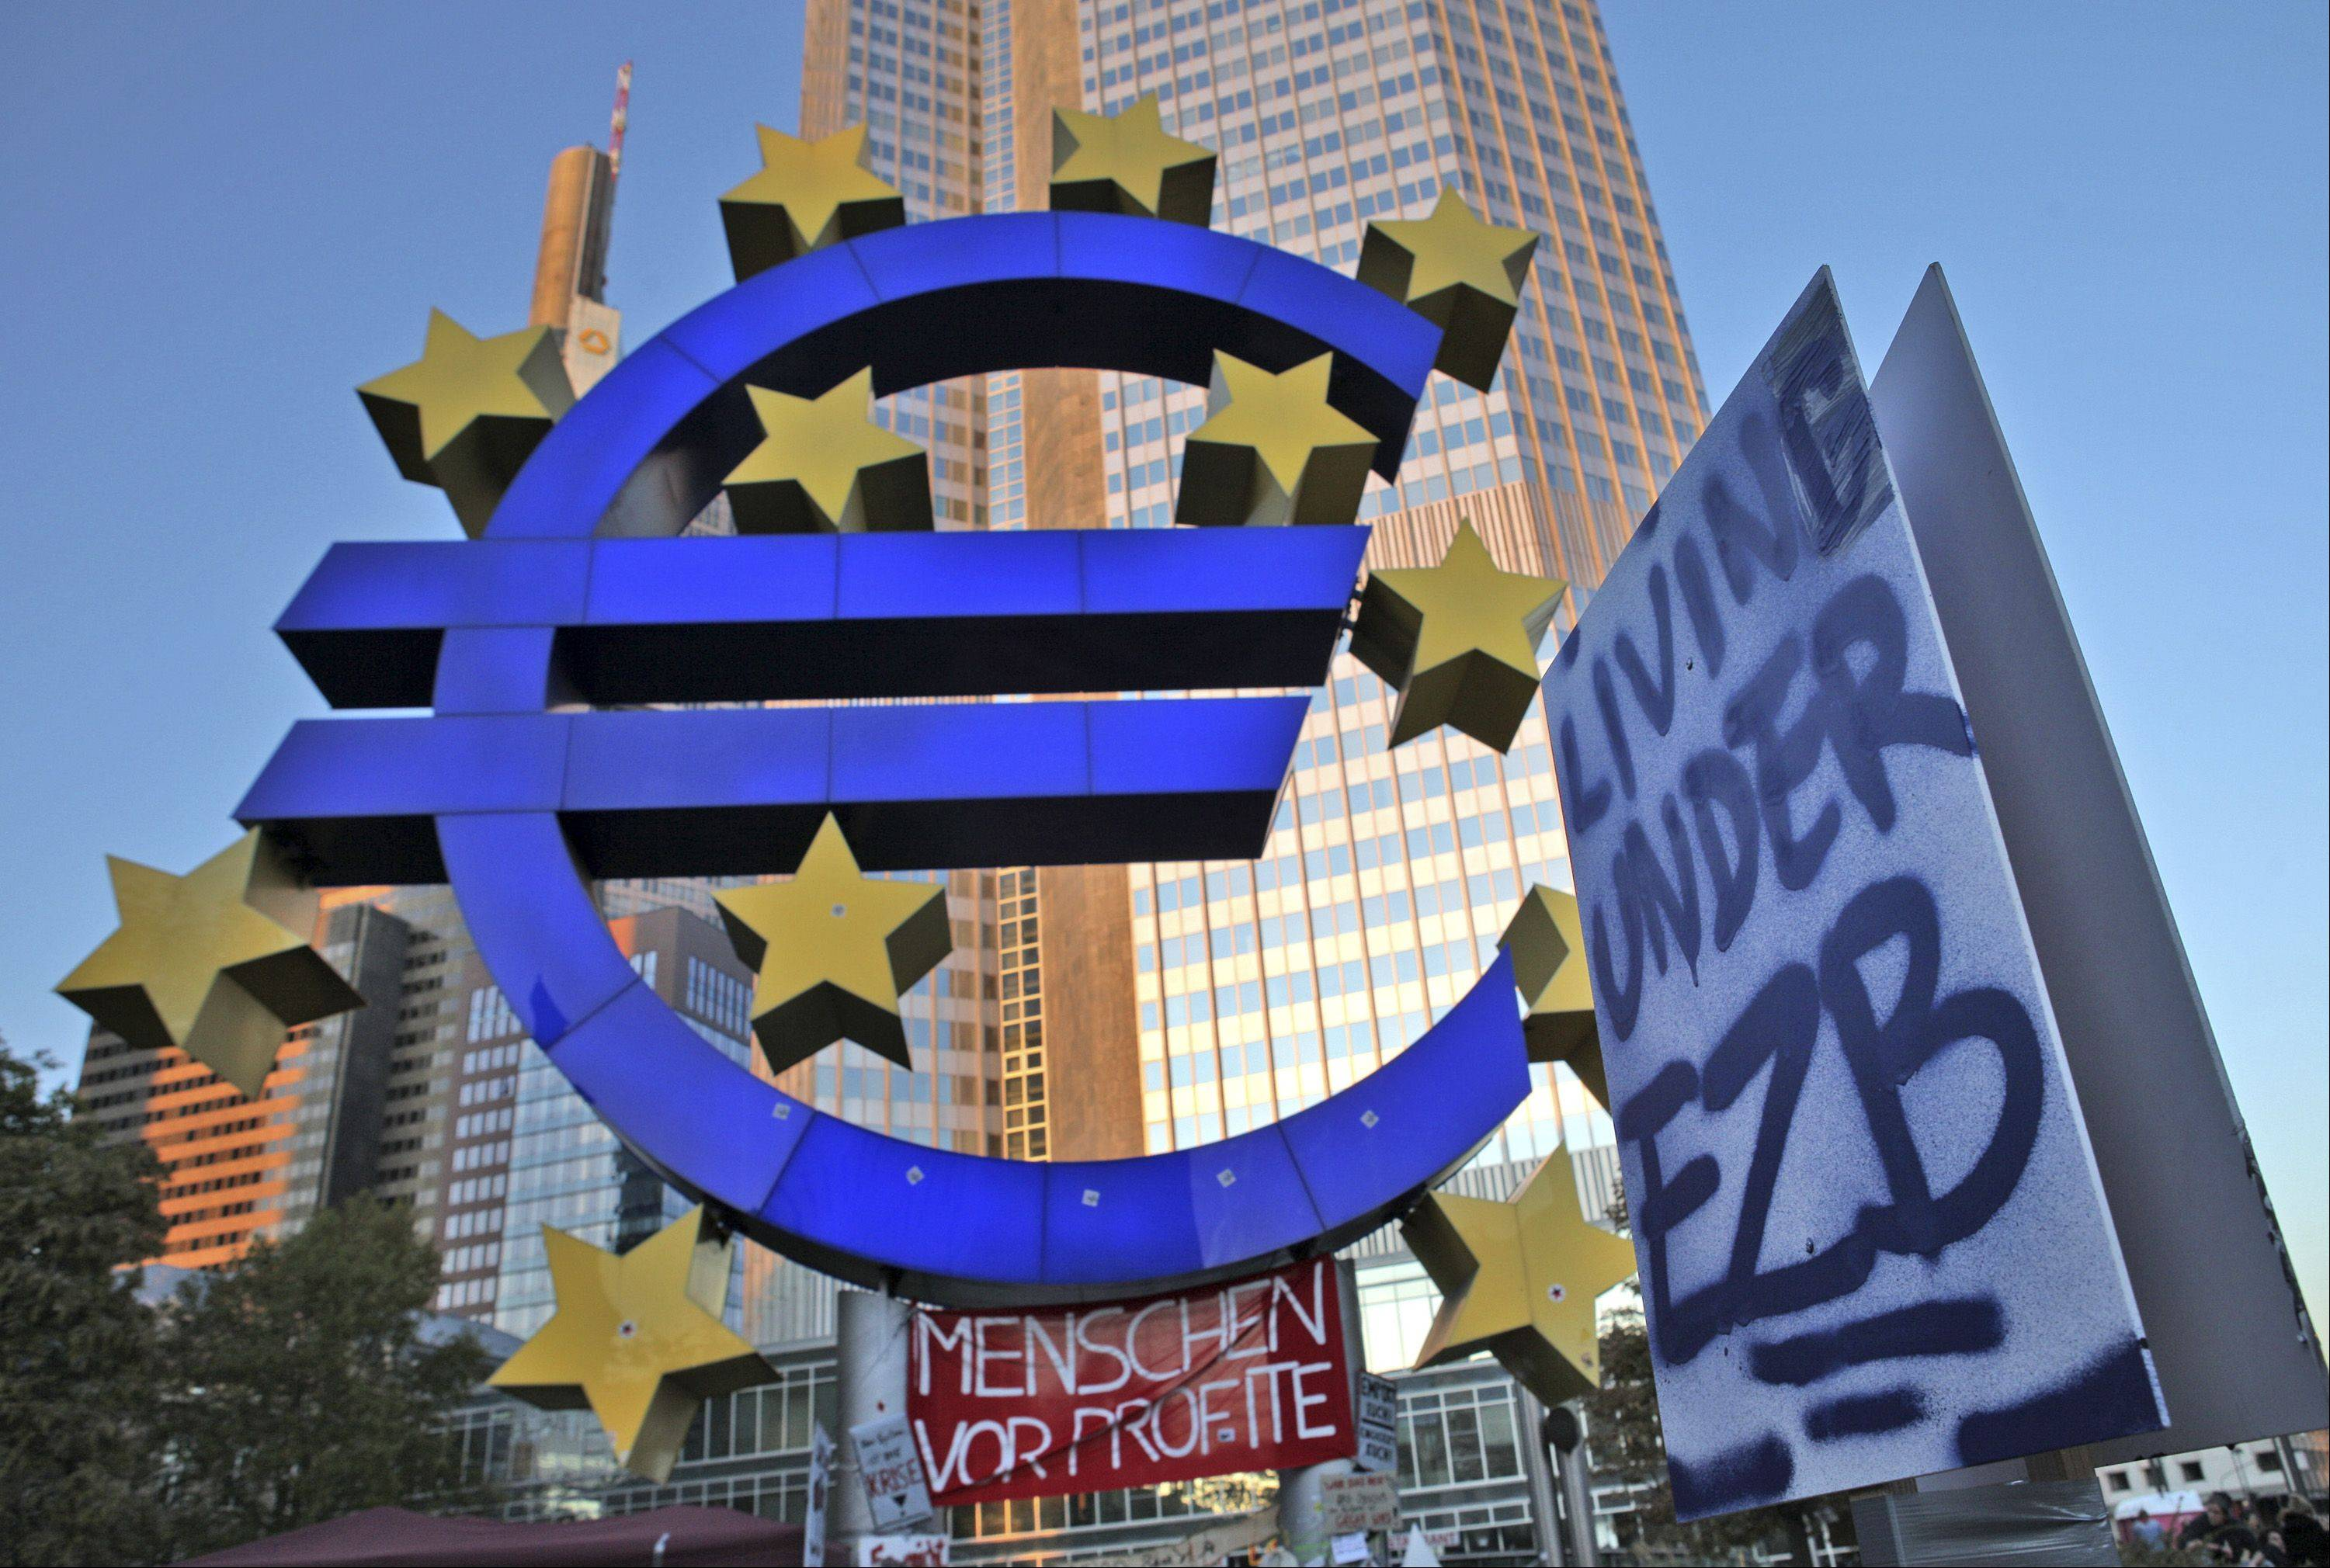 Banners are seen in front of the European Central Bank's (ECB) headquarters during a demonstration in Frankfurt, Germany, on Sunday, Oct. 16, 2011.